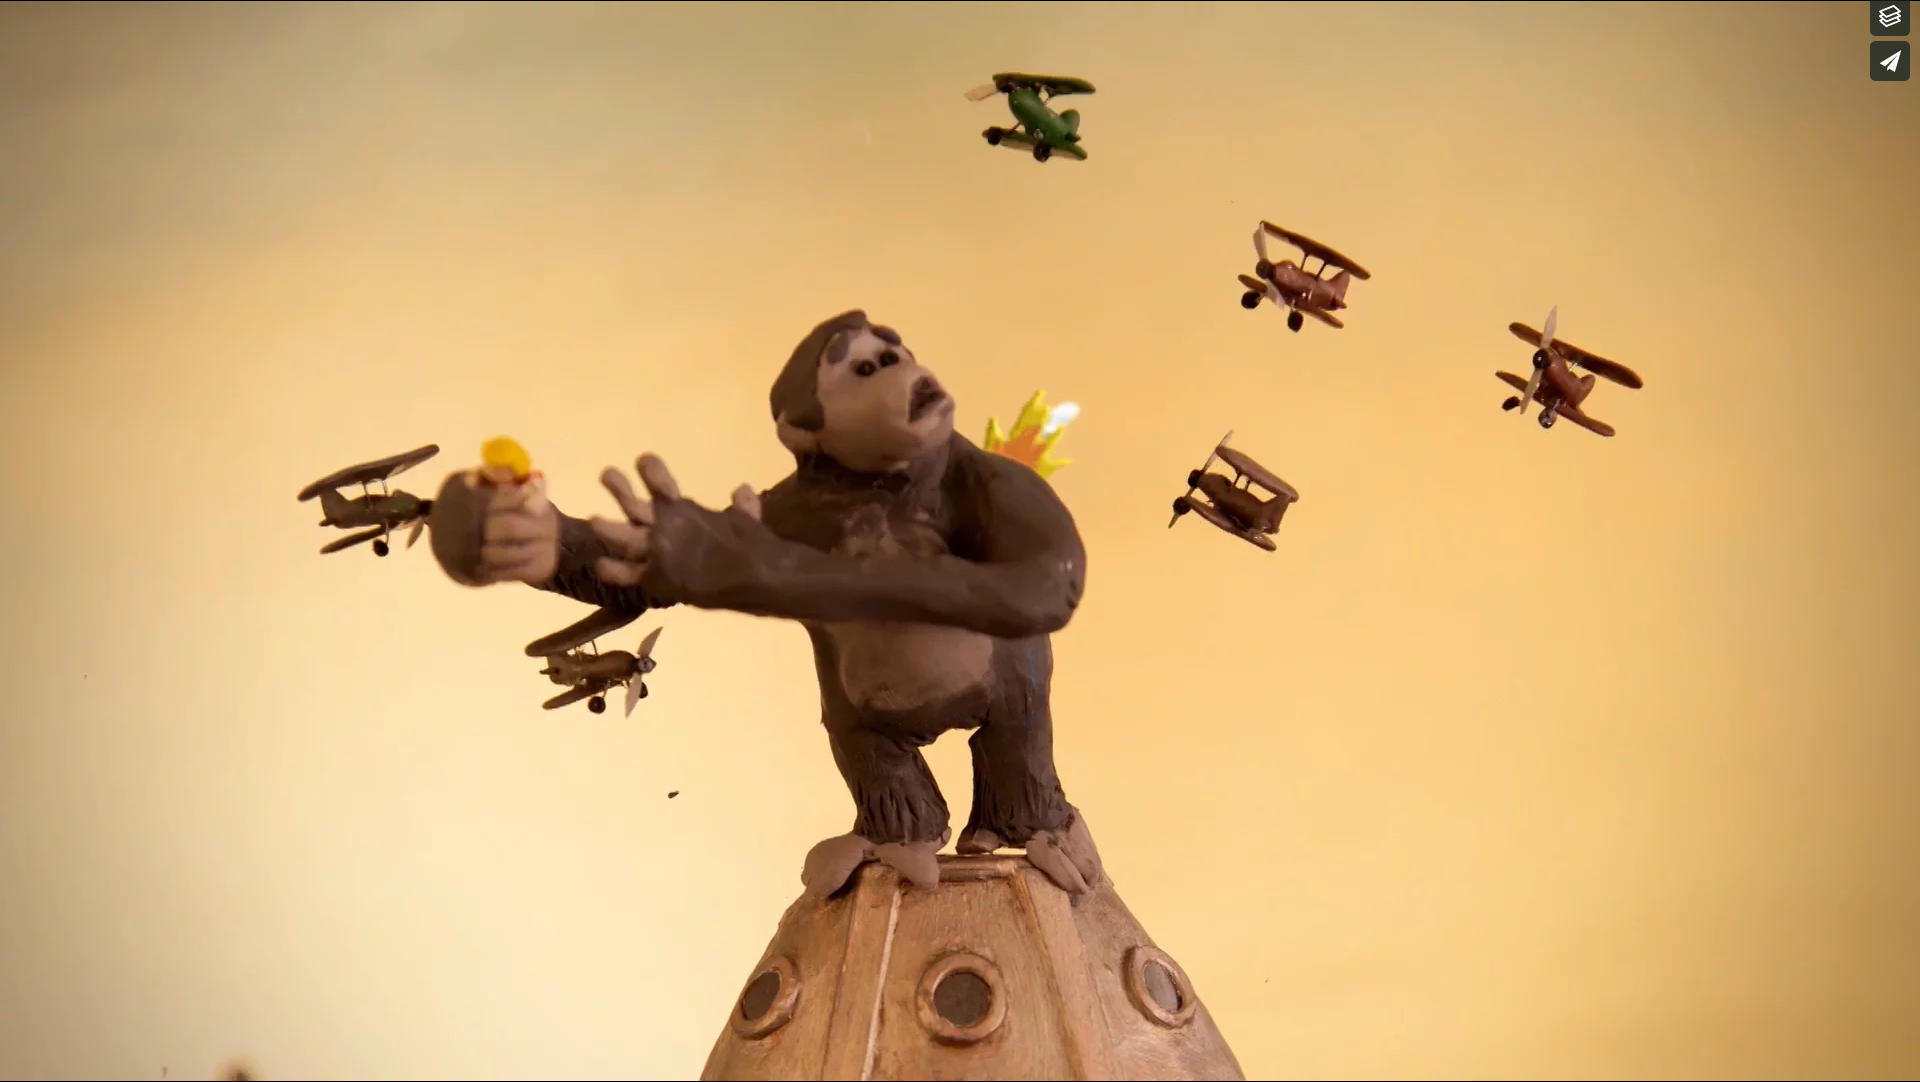 King Kong battles, in Princess Kong a film for Plan International